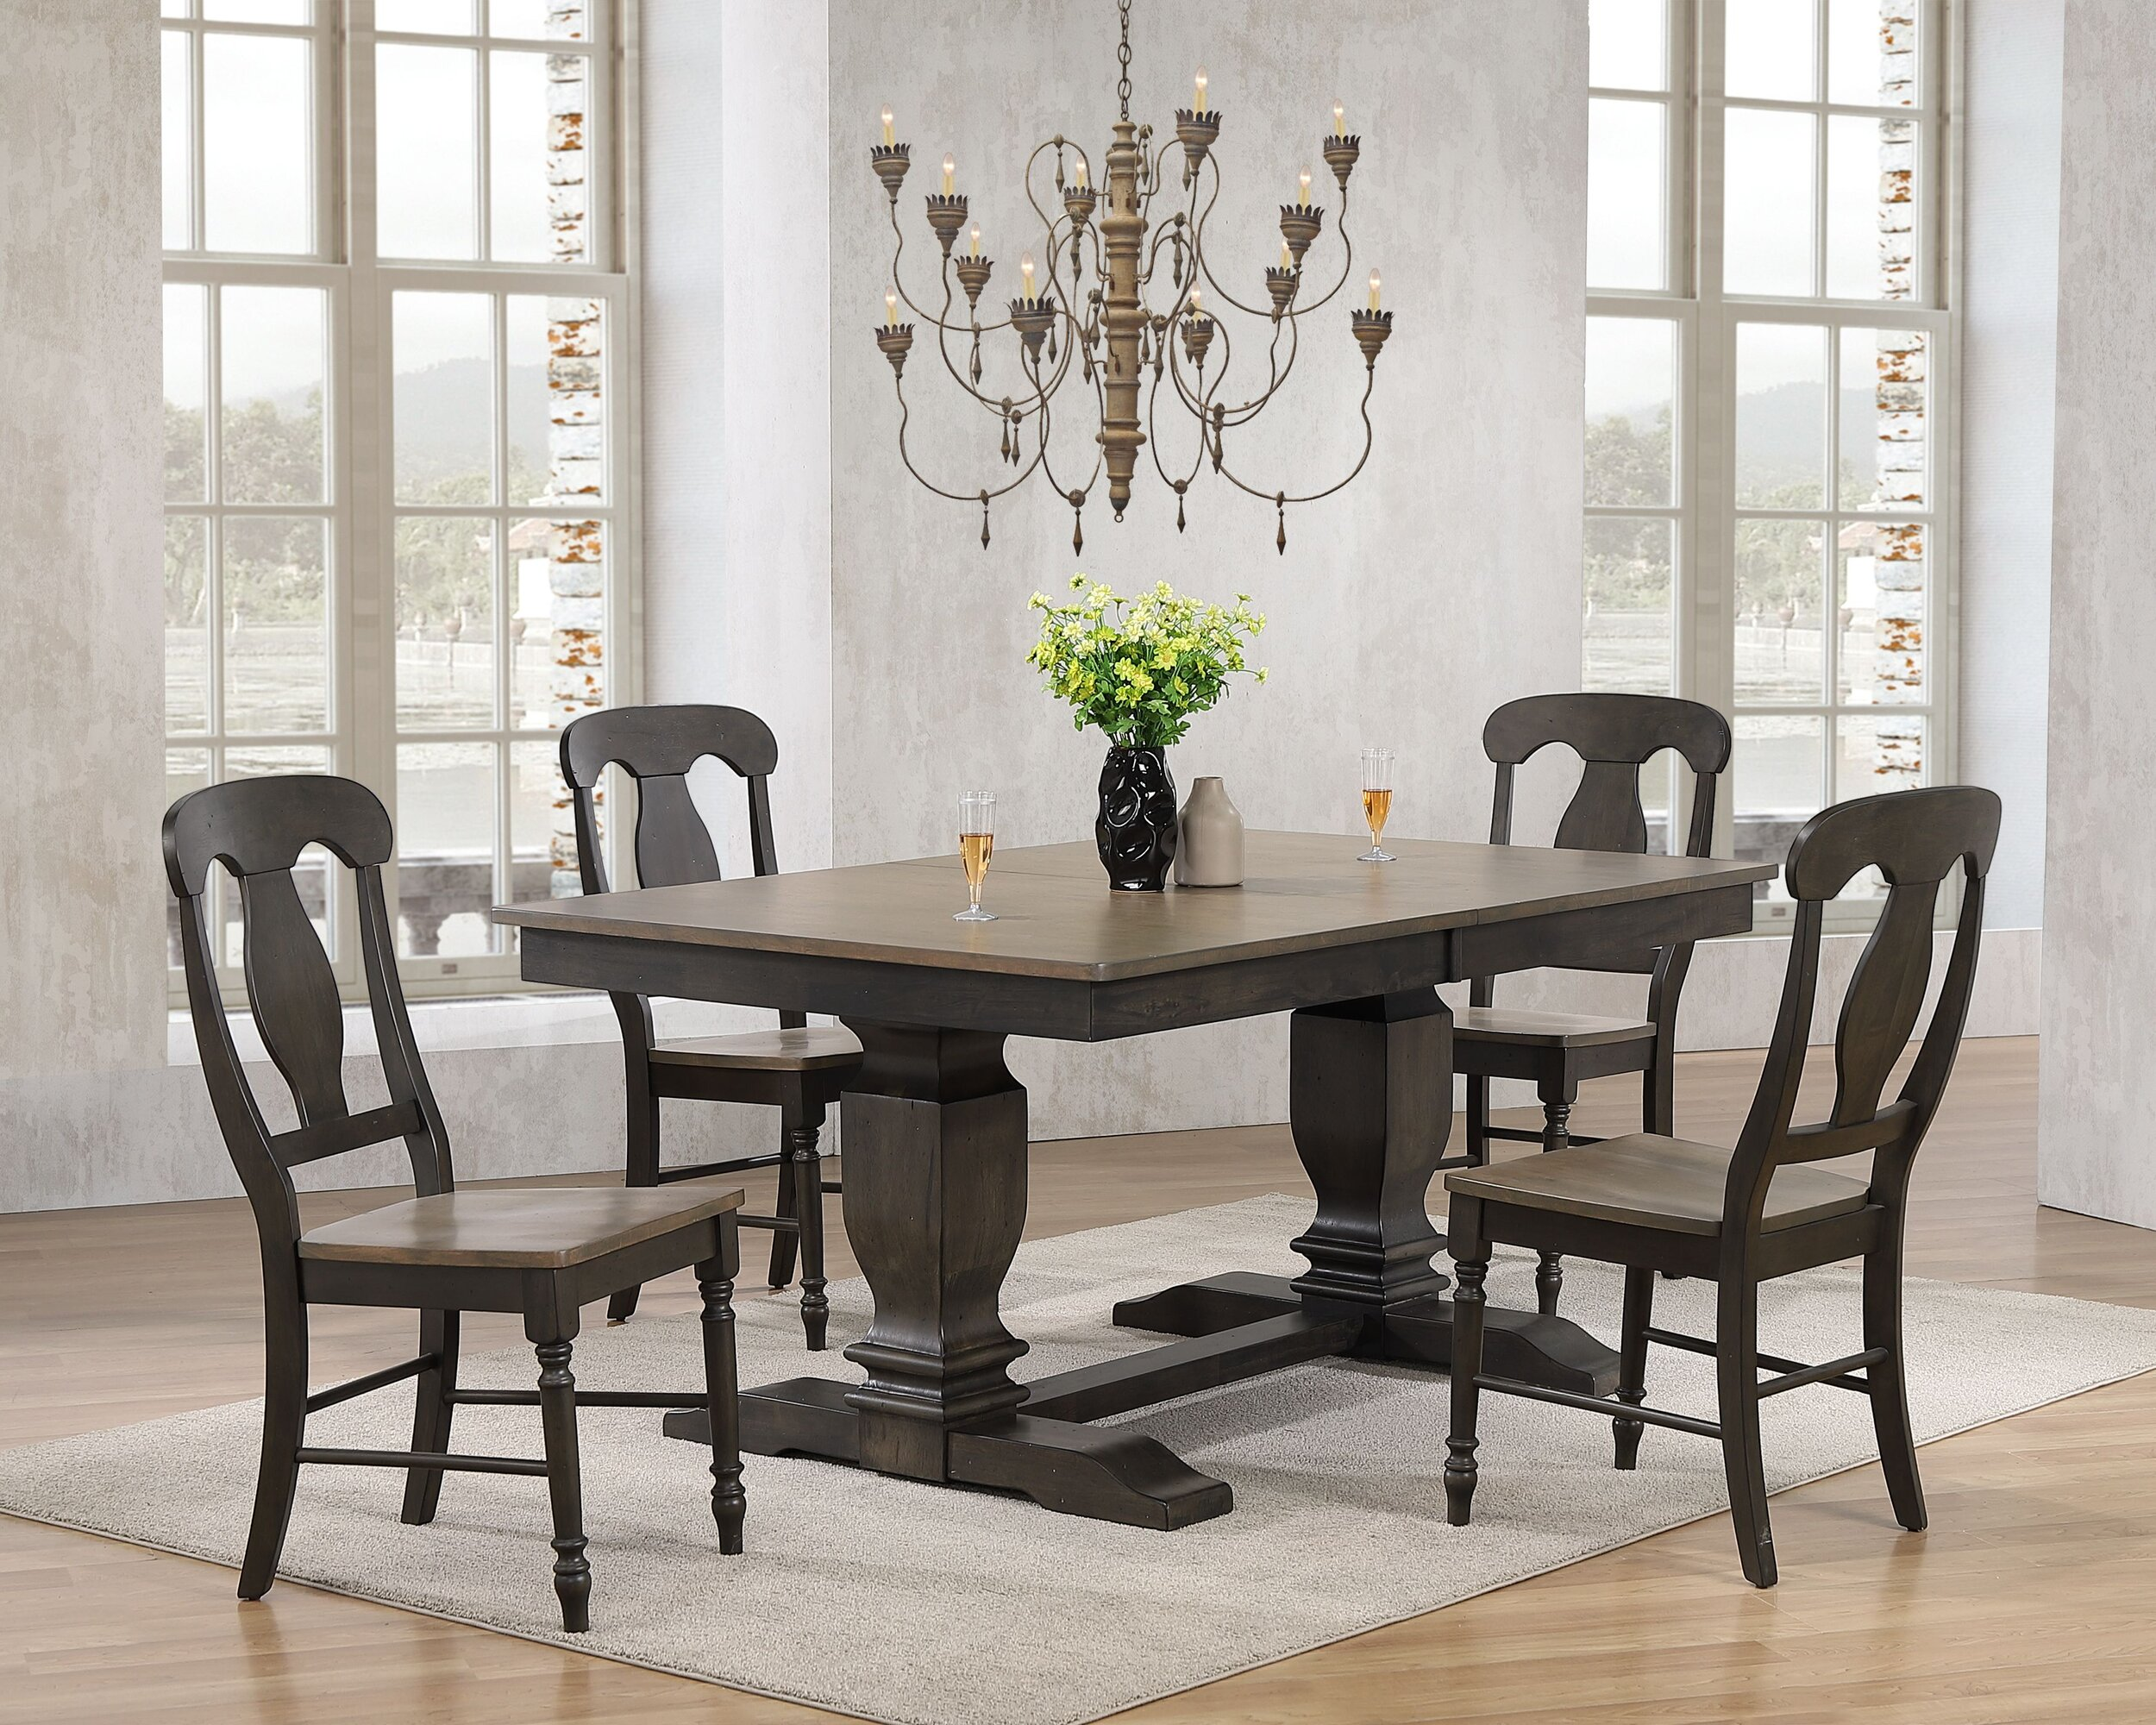 "42""x64""x82"" Double Pedestal Transitional Antiqued Grey Stone Black Stone Napoleon Back 5-Piece Dining Set"